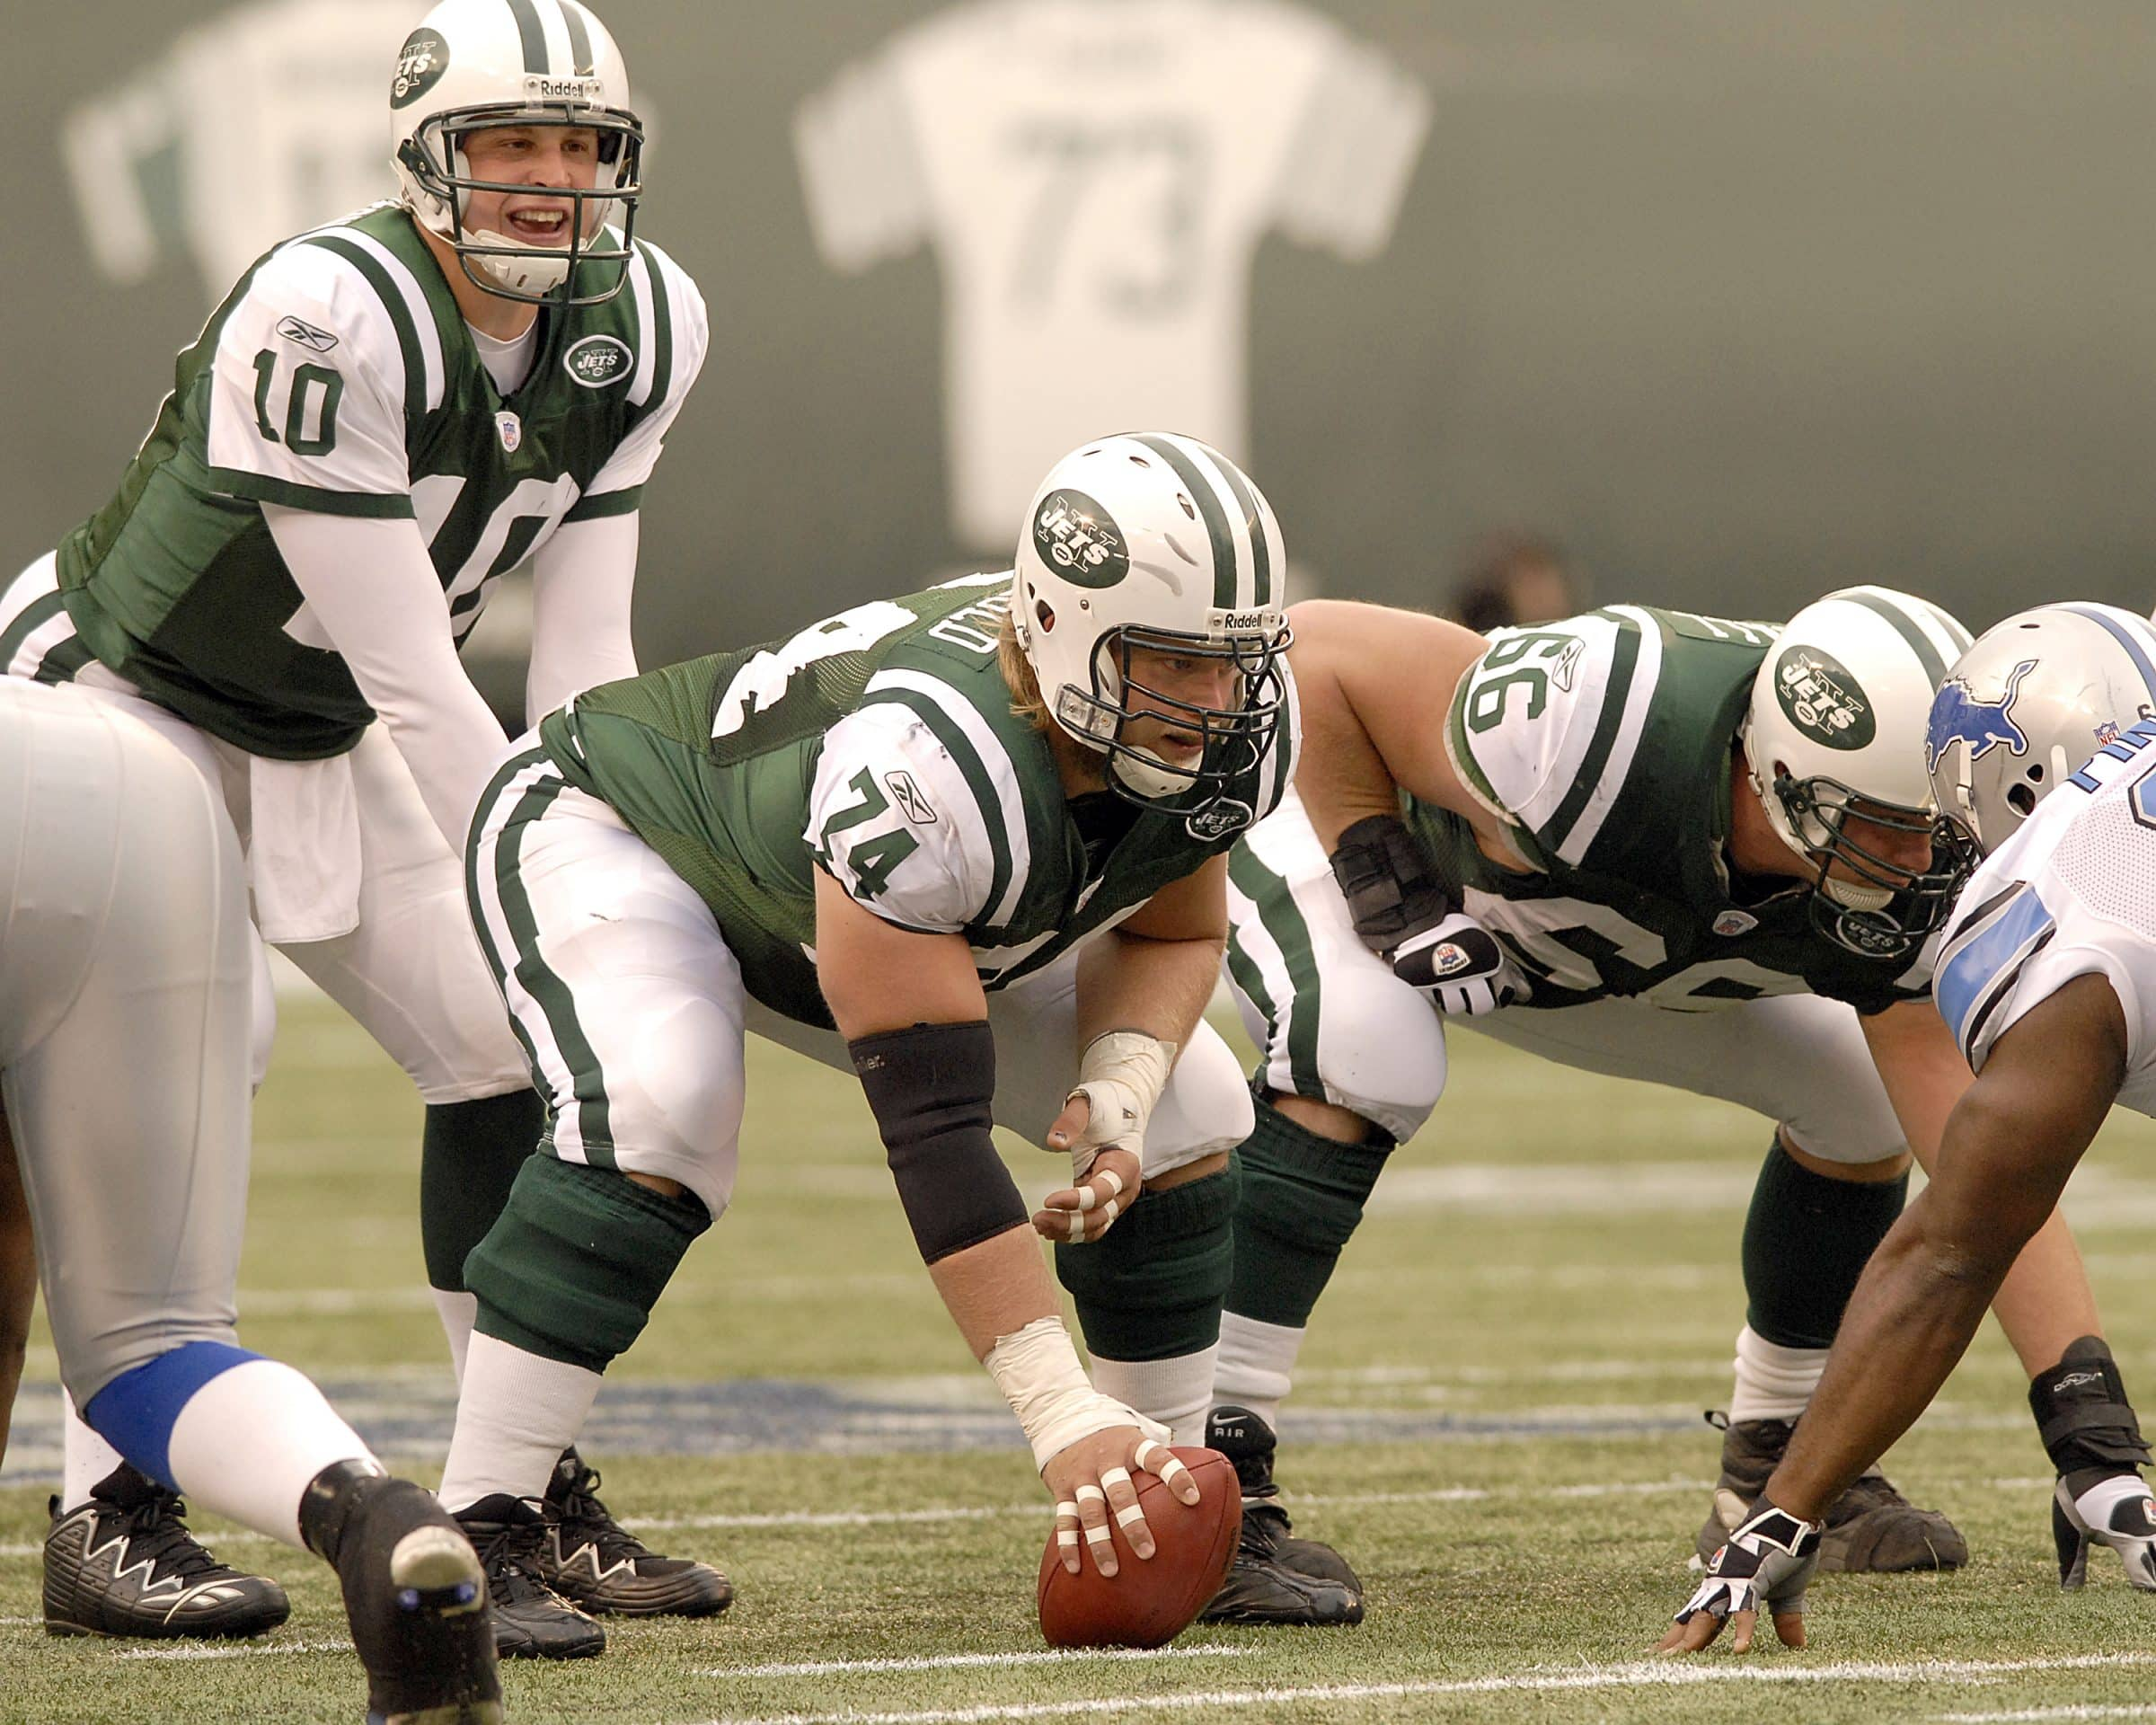 New York Jets <a rel=